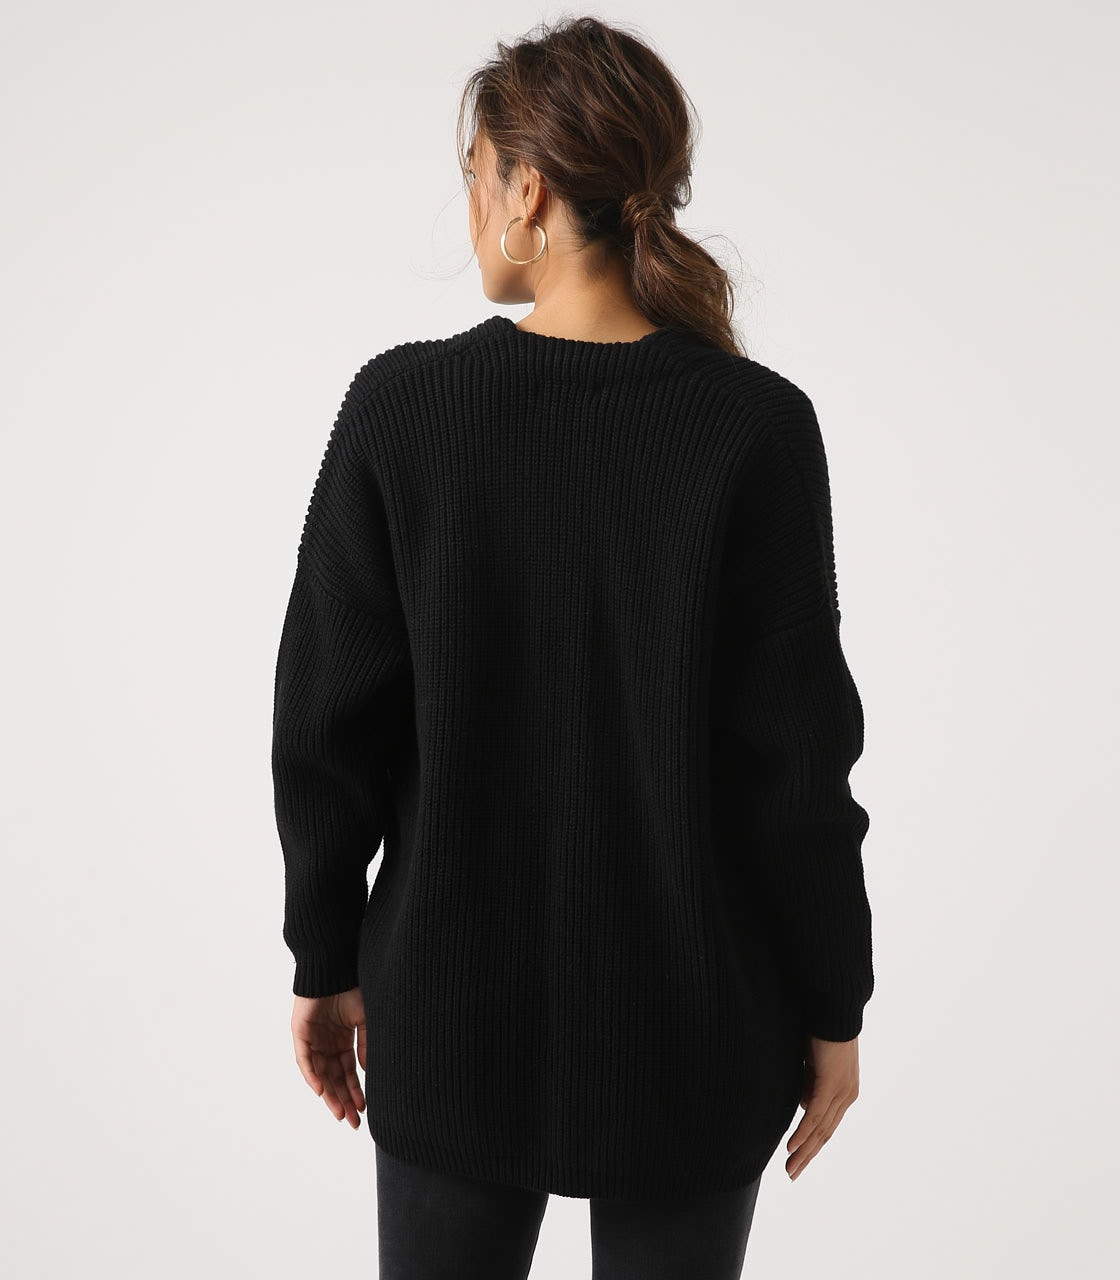 【AZUL BY MOUSSY】LOWGAUGE LONG KNIT CARDIGAN 詳細画像 BLK 7